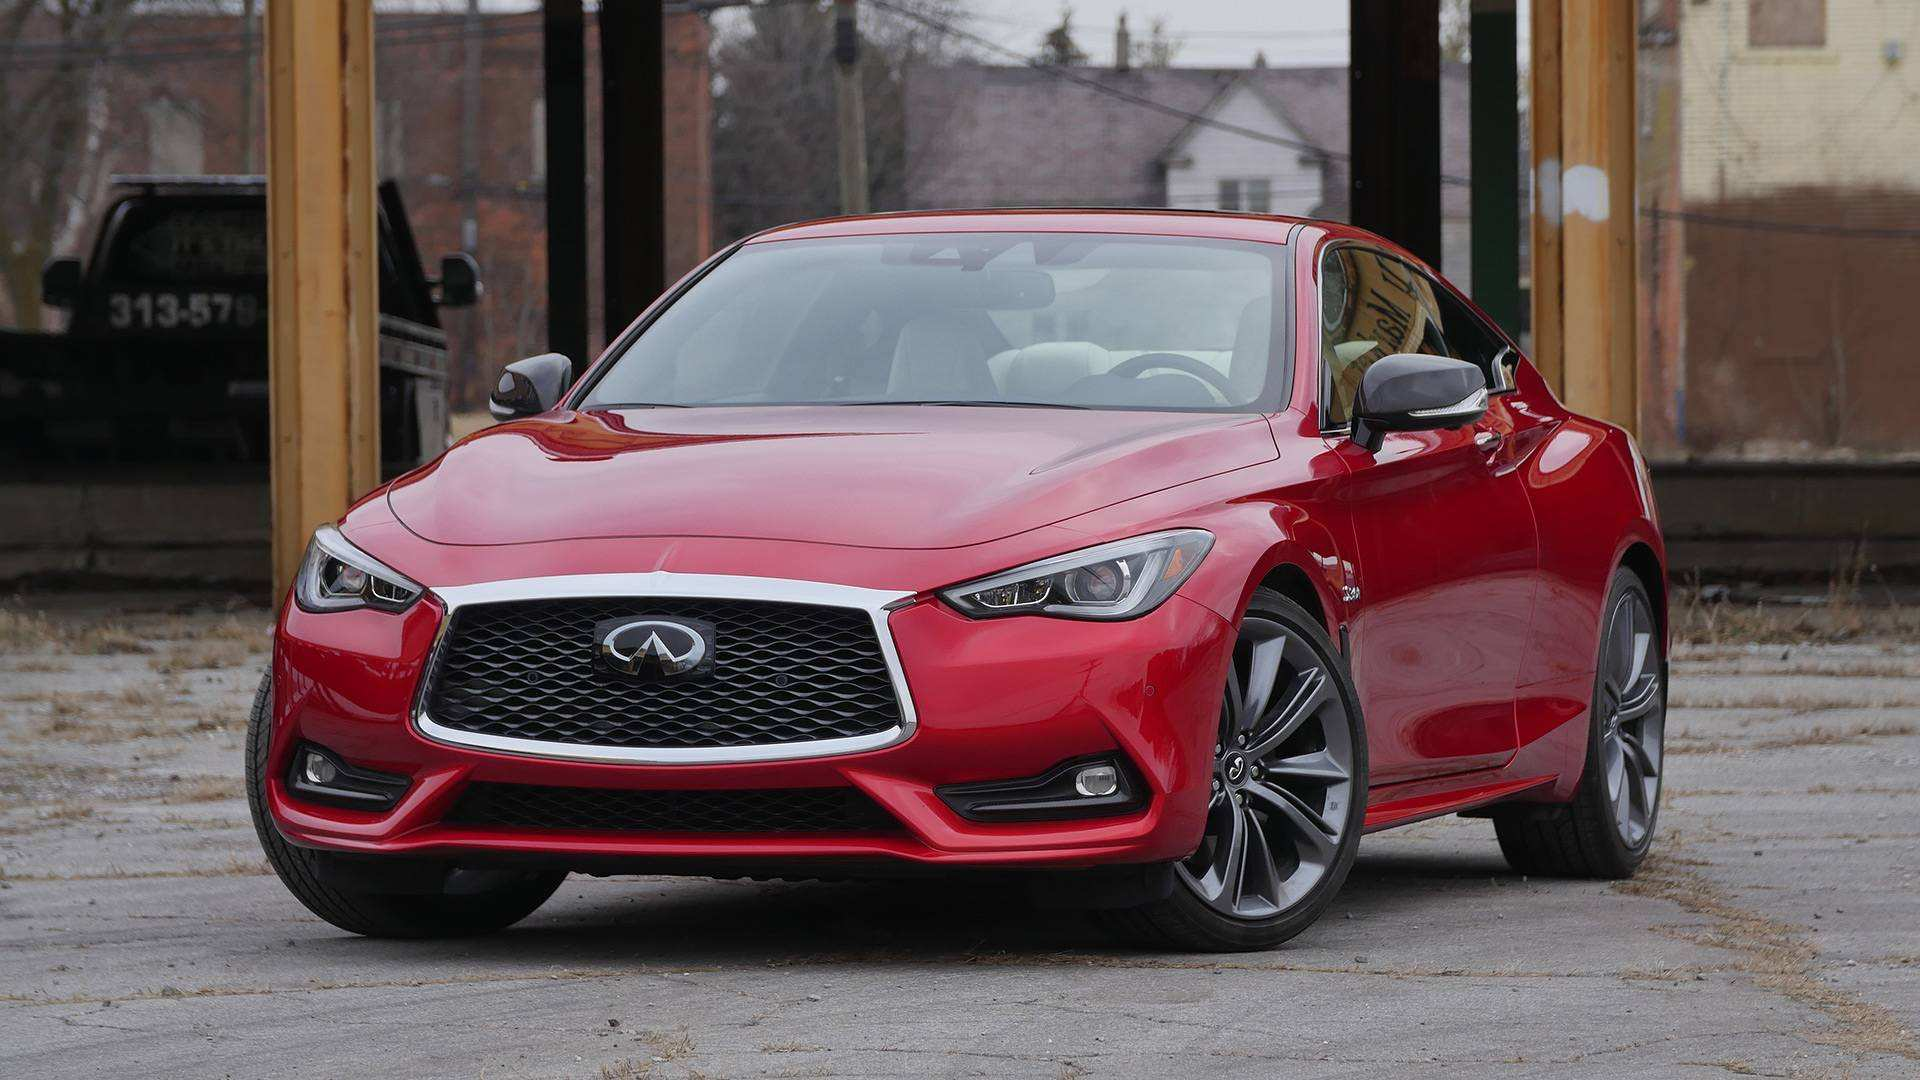 48 New 2020 Infiniti New Concept Specs and Review for 2020 Infiniti New Concept